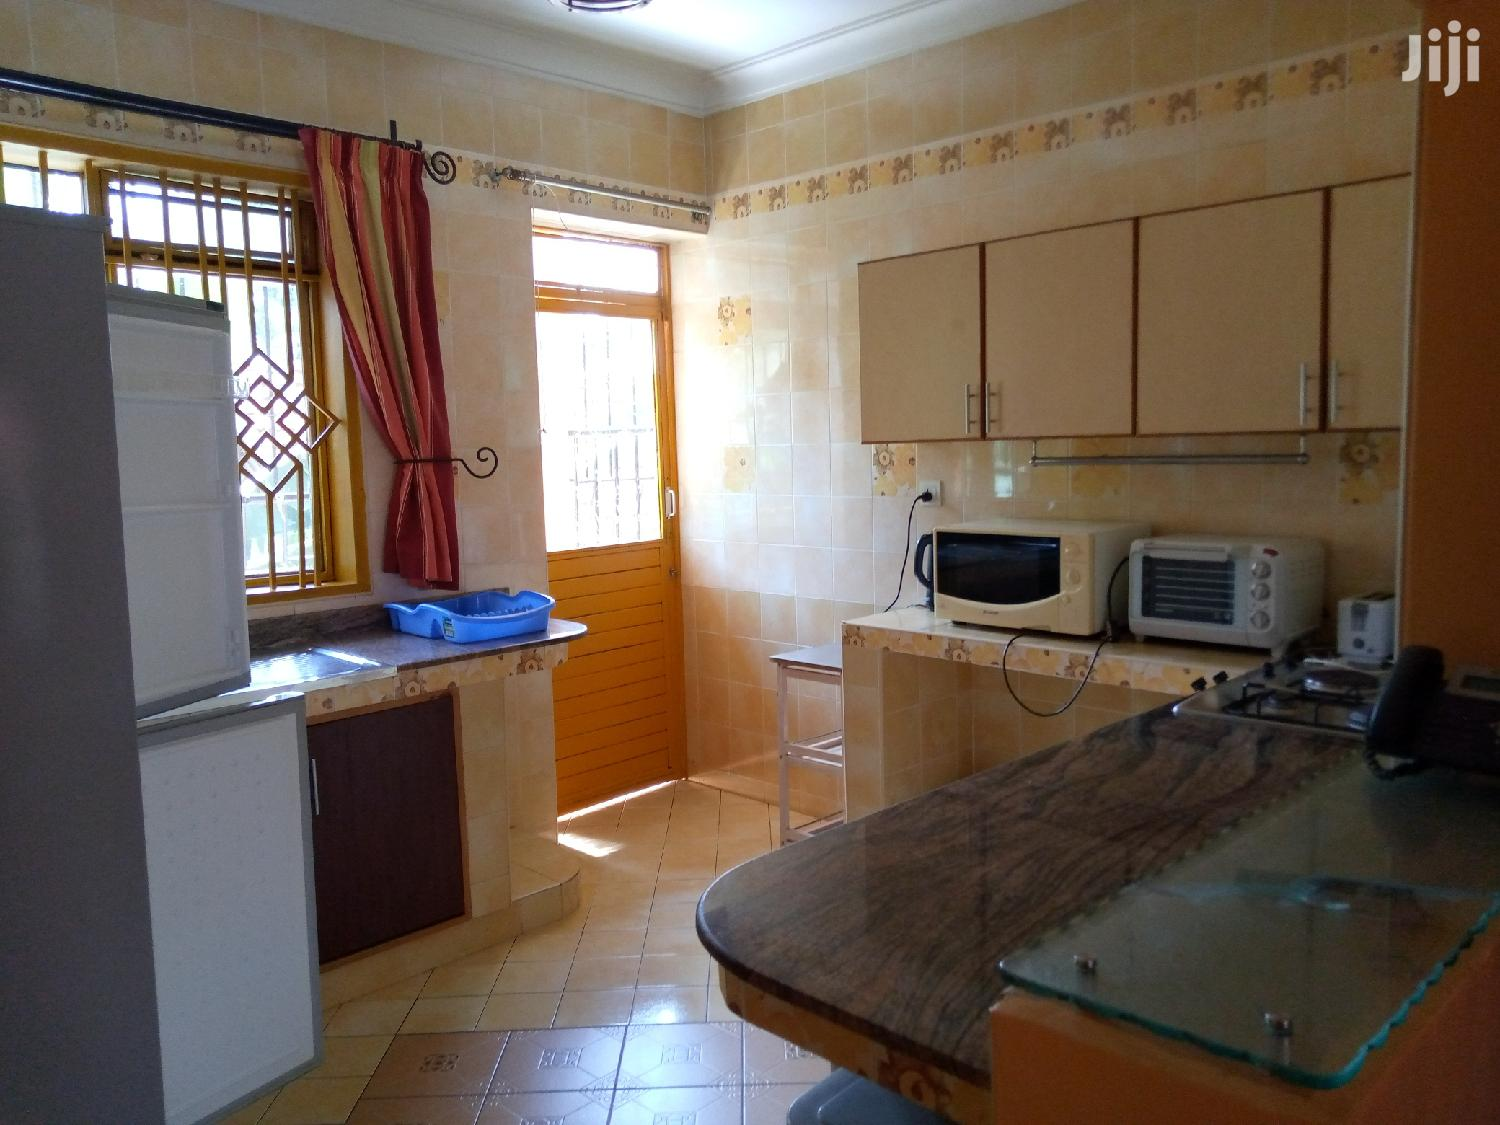 Fully Furnished Two Bedroom Apartment In Muyenga For Rent | Houses & Apartments For Rent for sale in Kampala, Central Region, Uganda